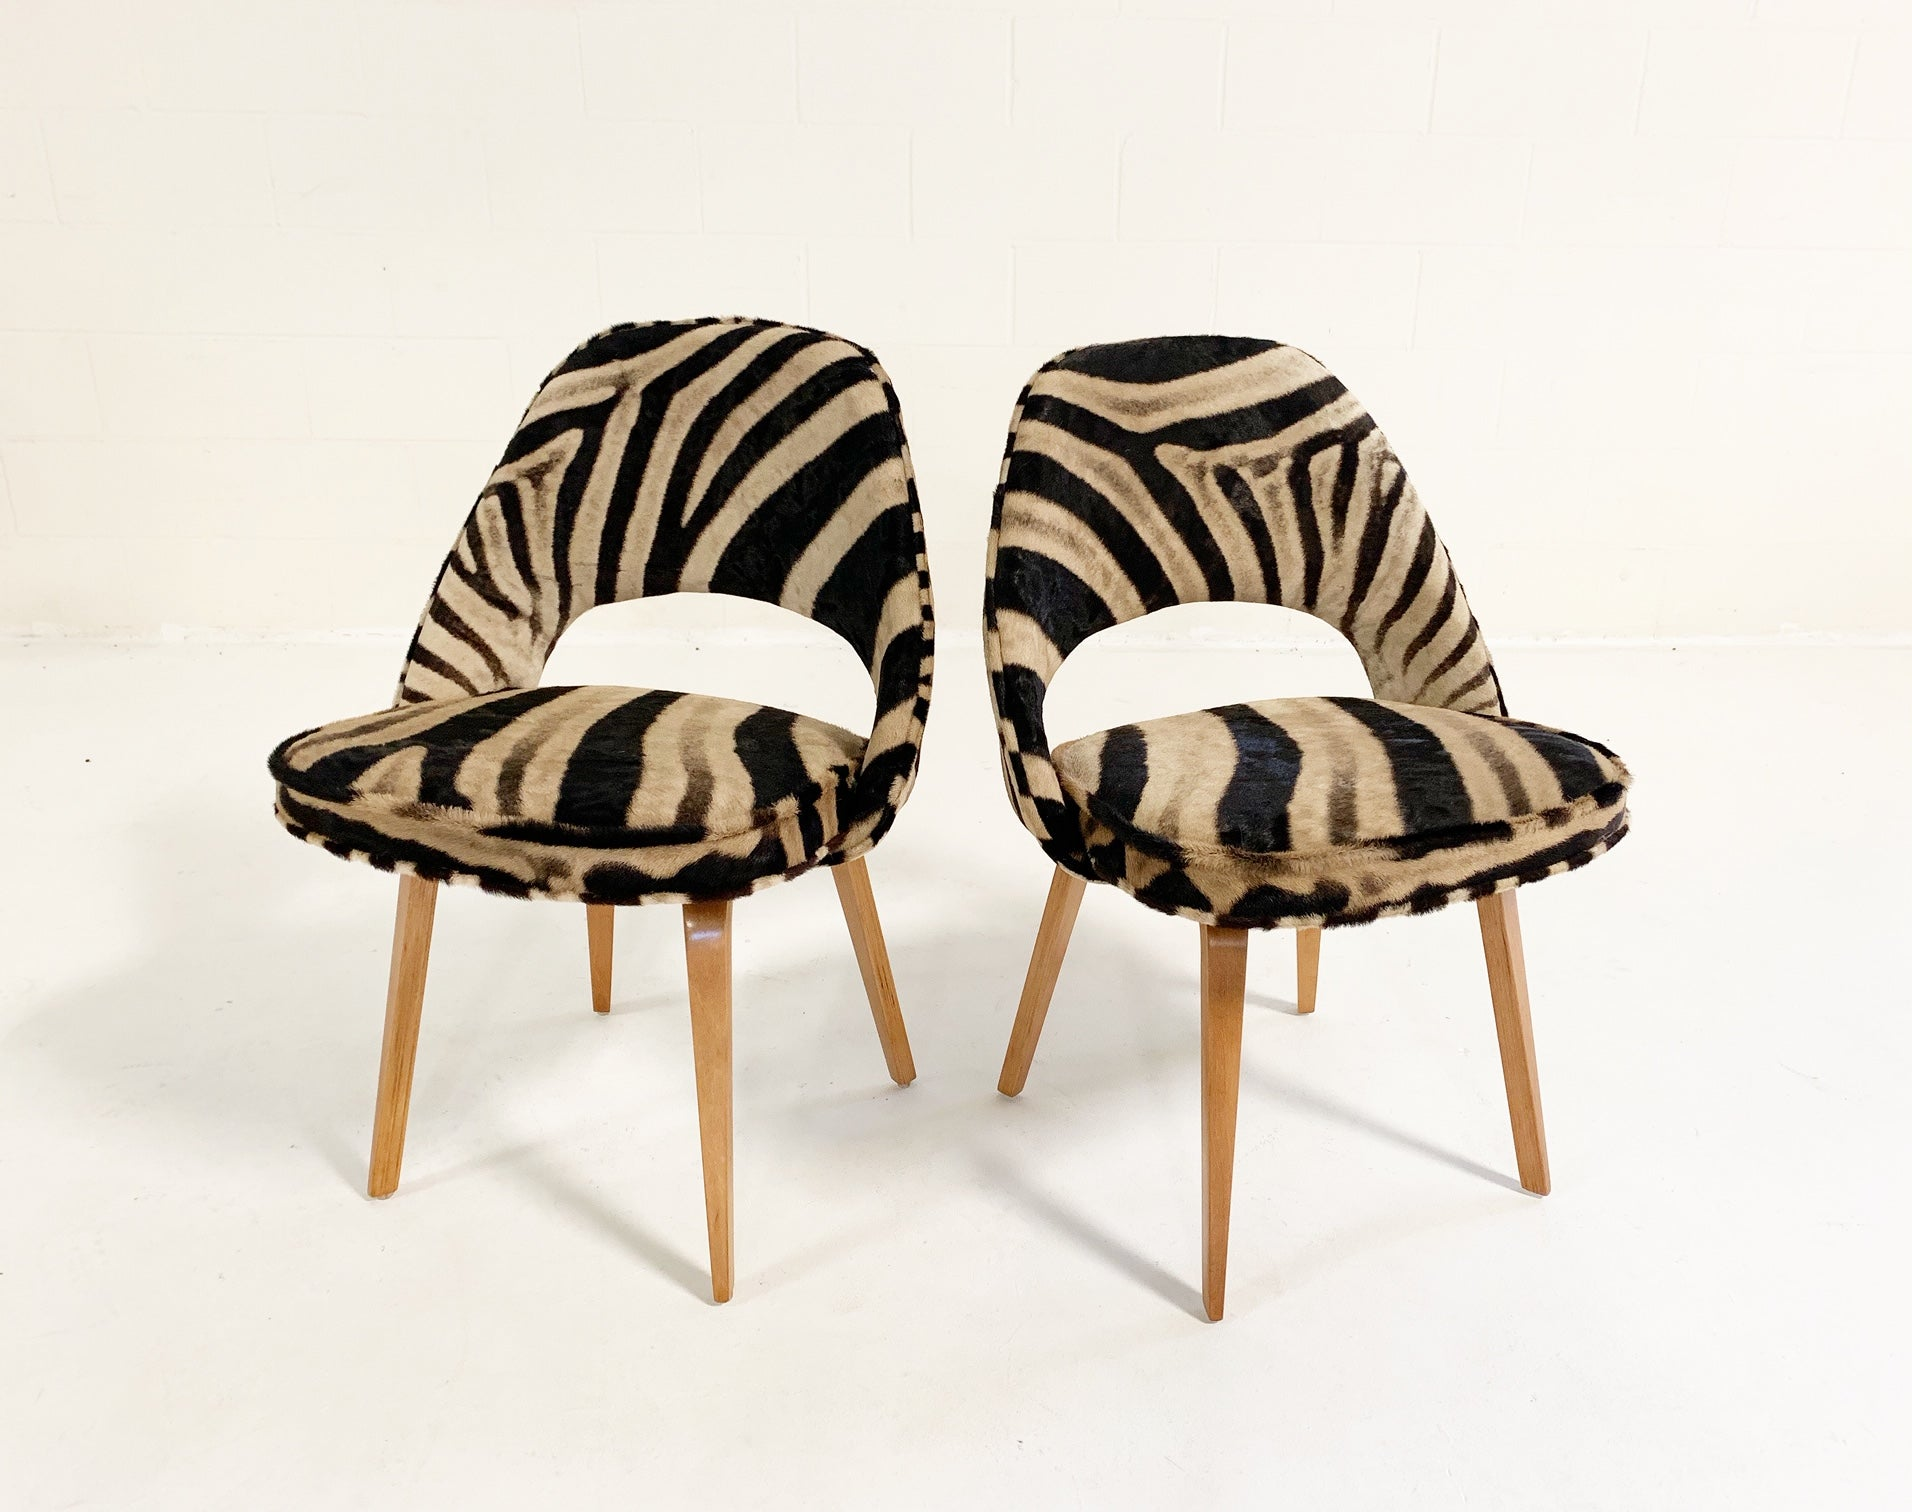 Executive Chairs in Zebra Hide, pair - FORSYTH